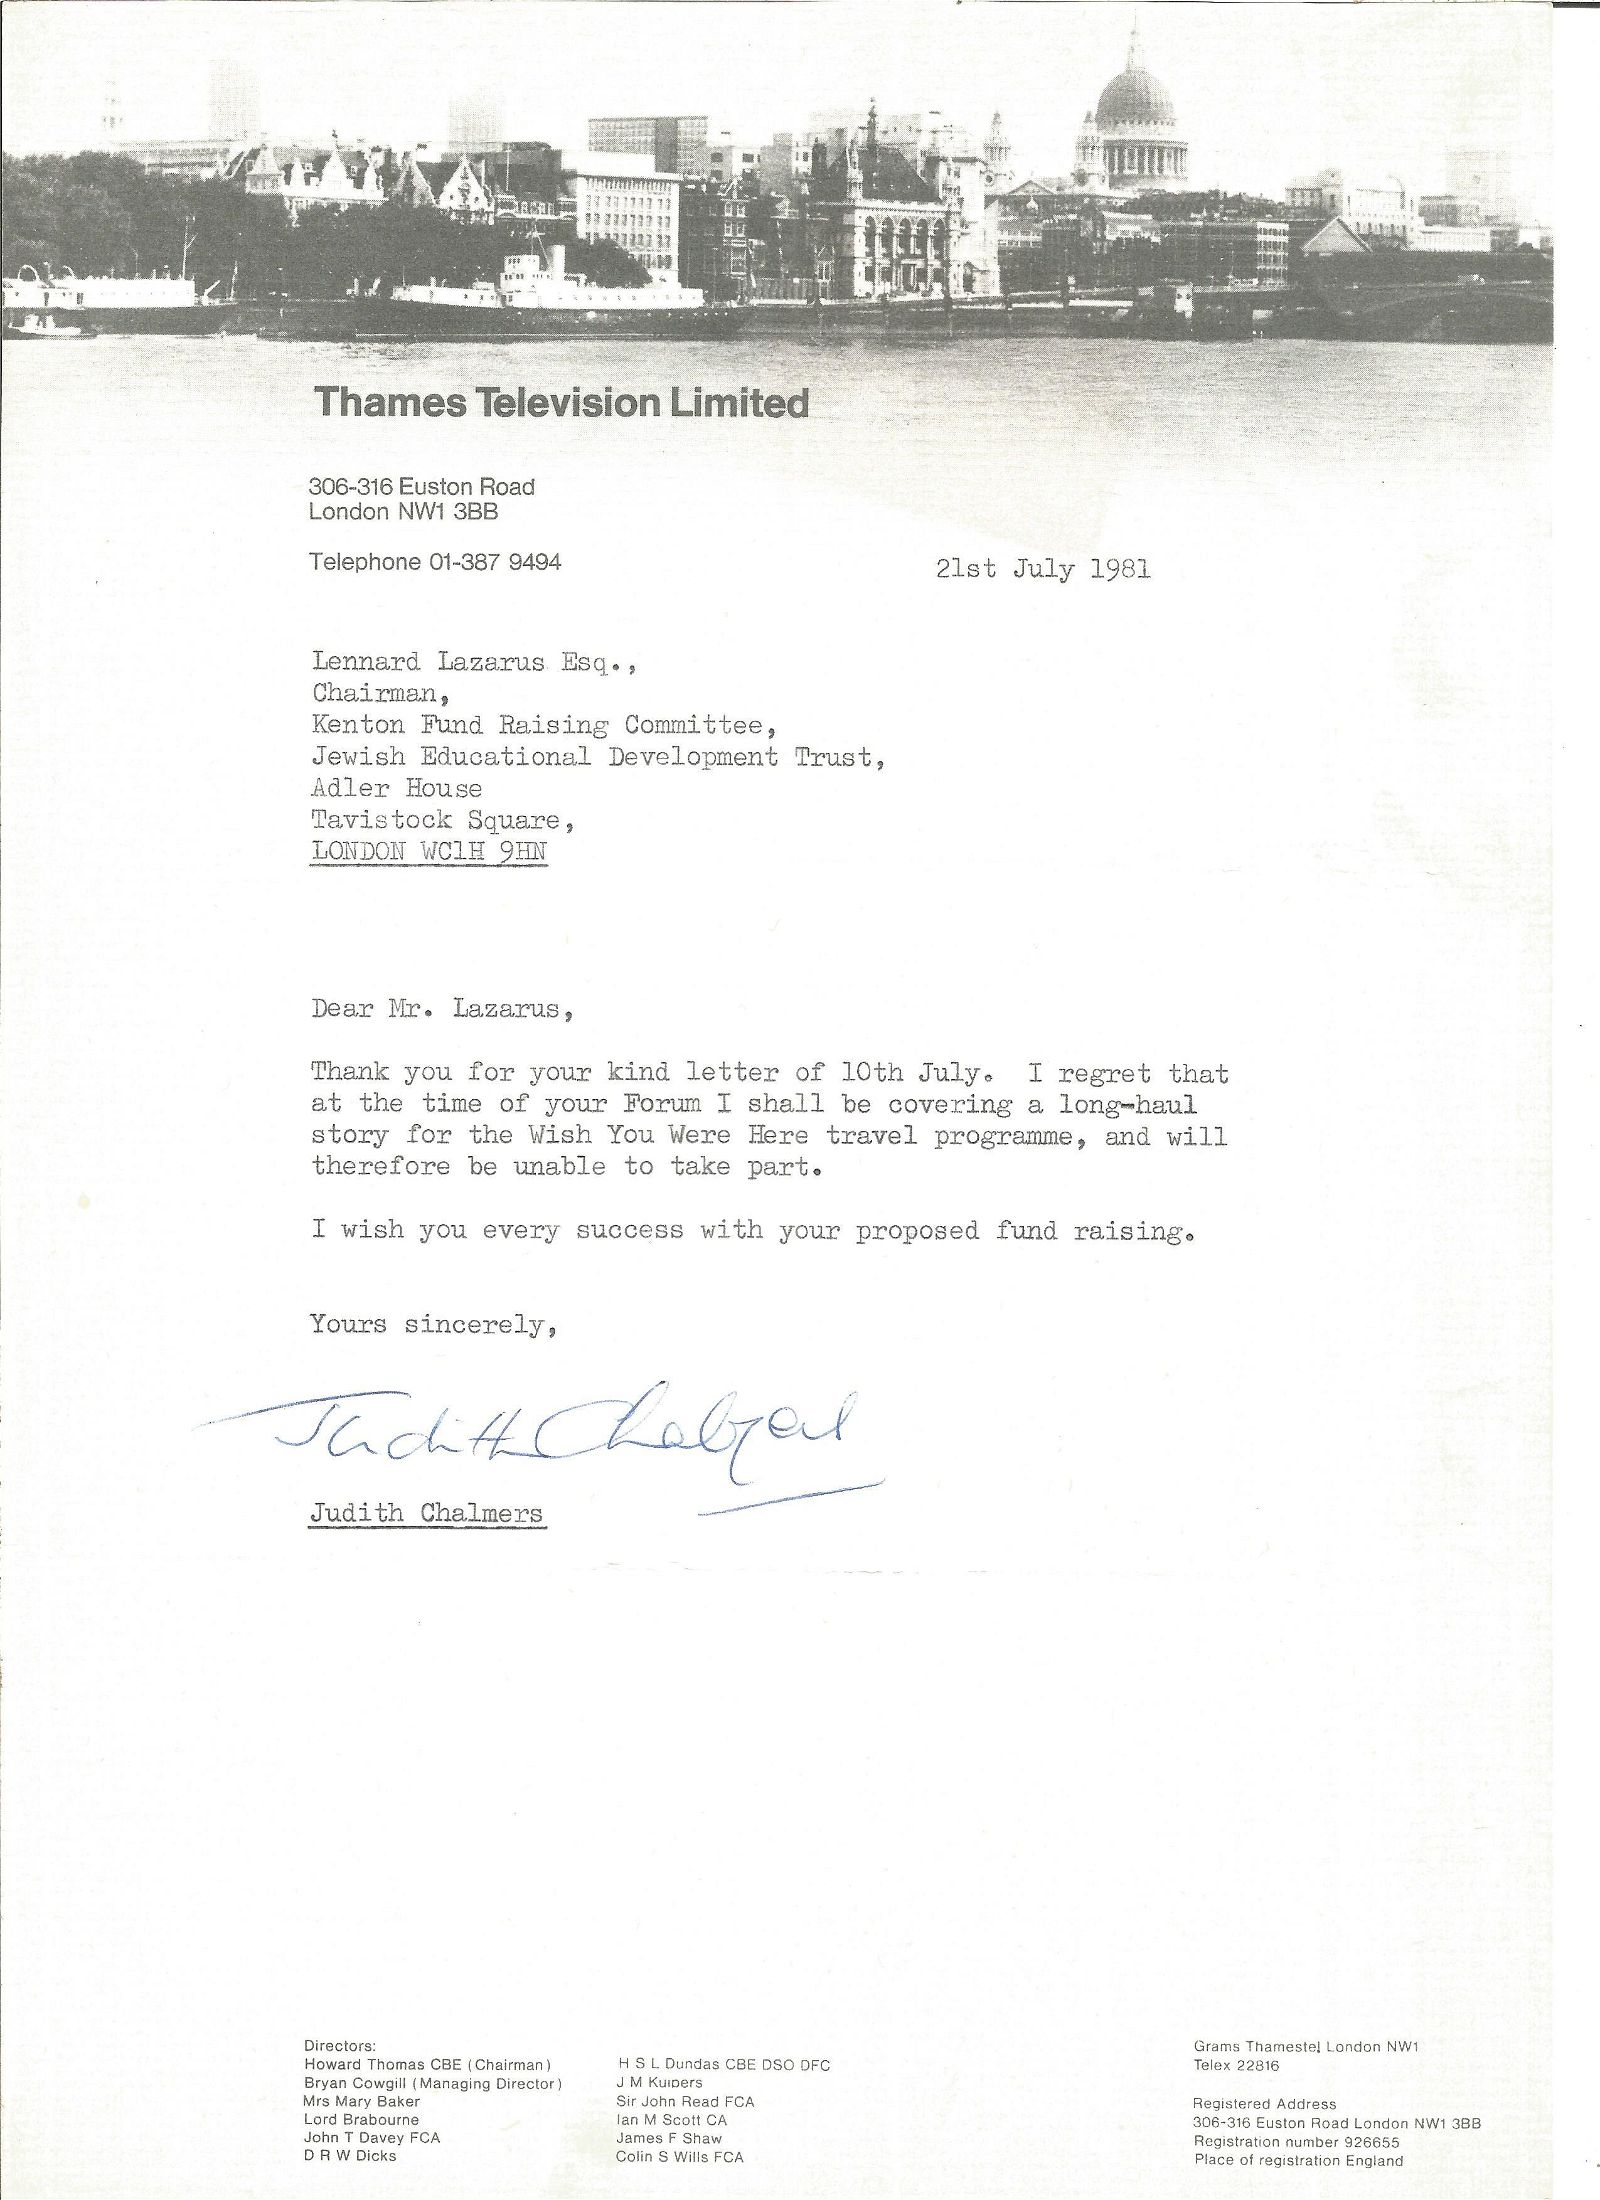 Judith Chalmers TLS typed signed letter dated 21/7/81.